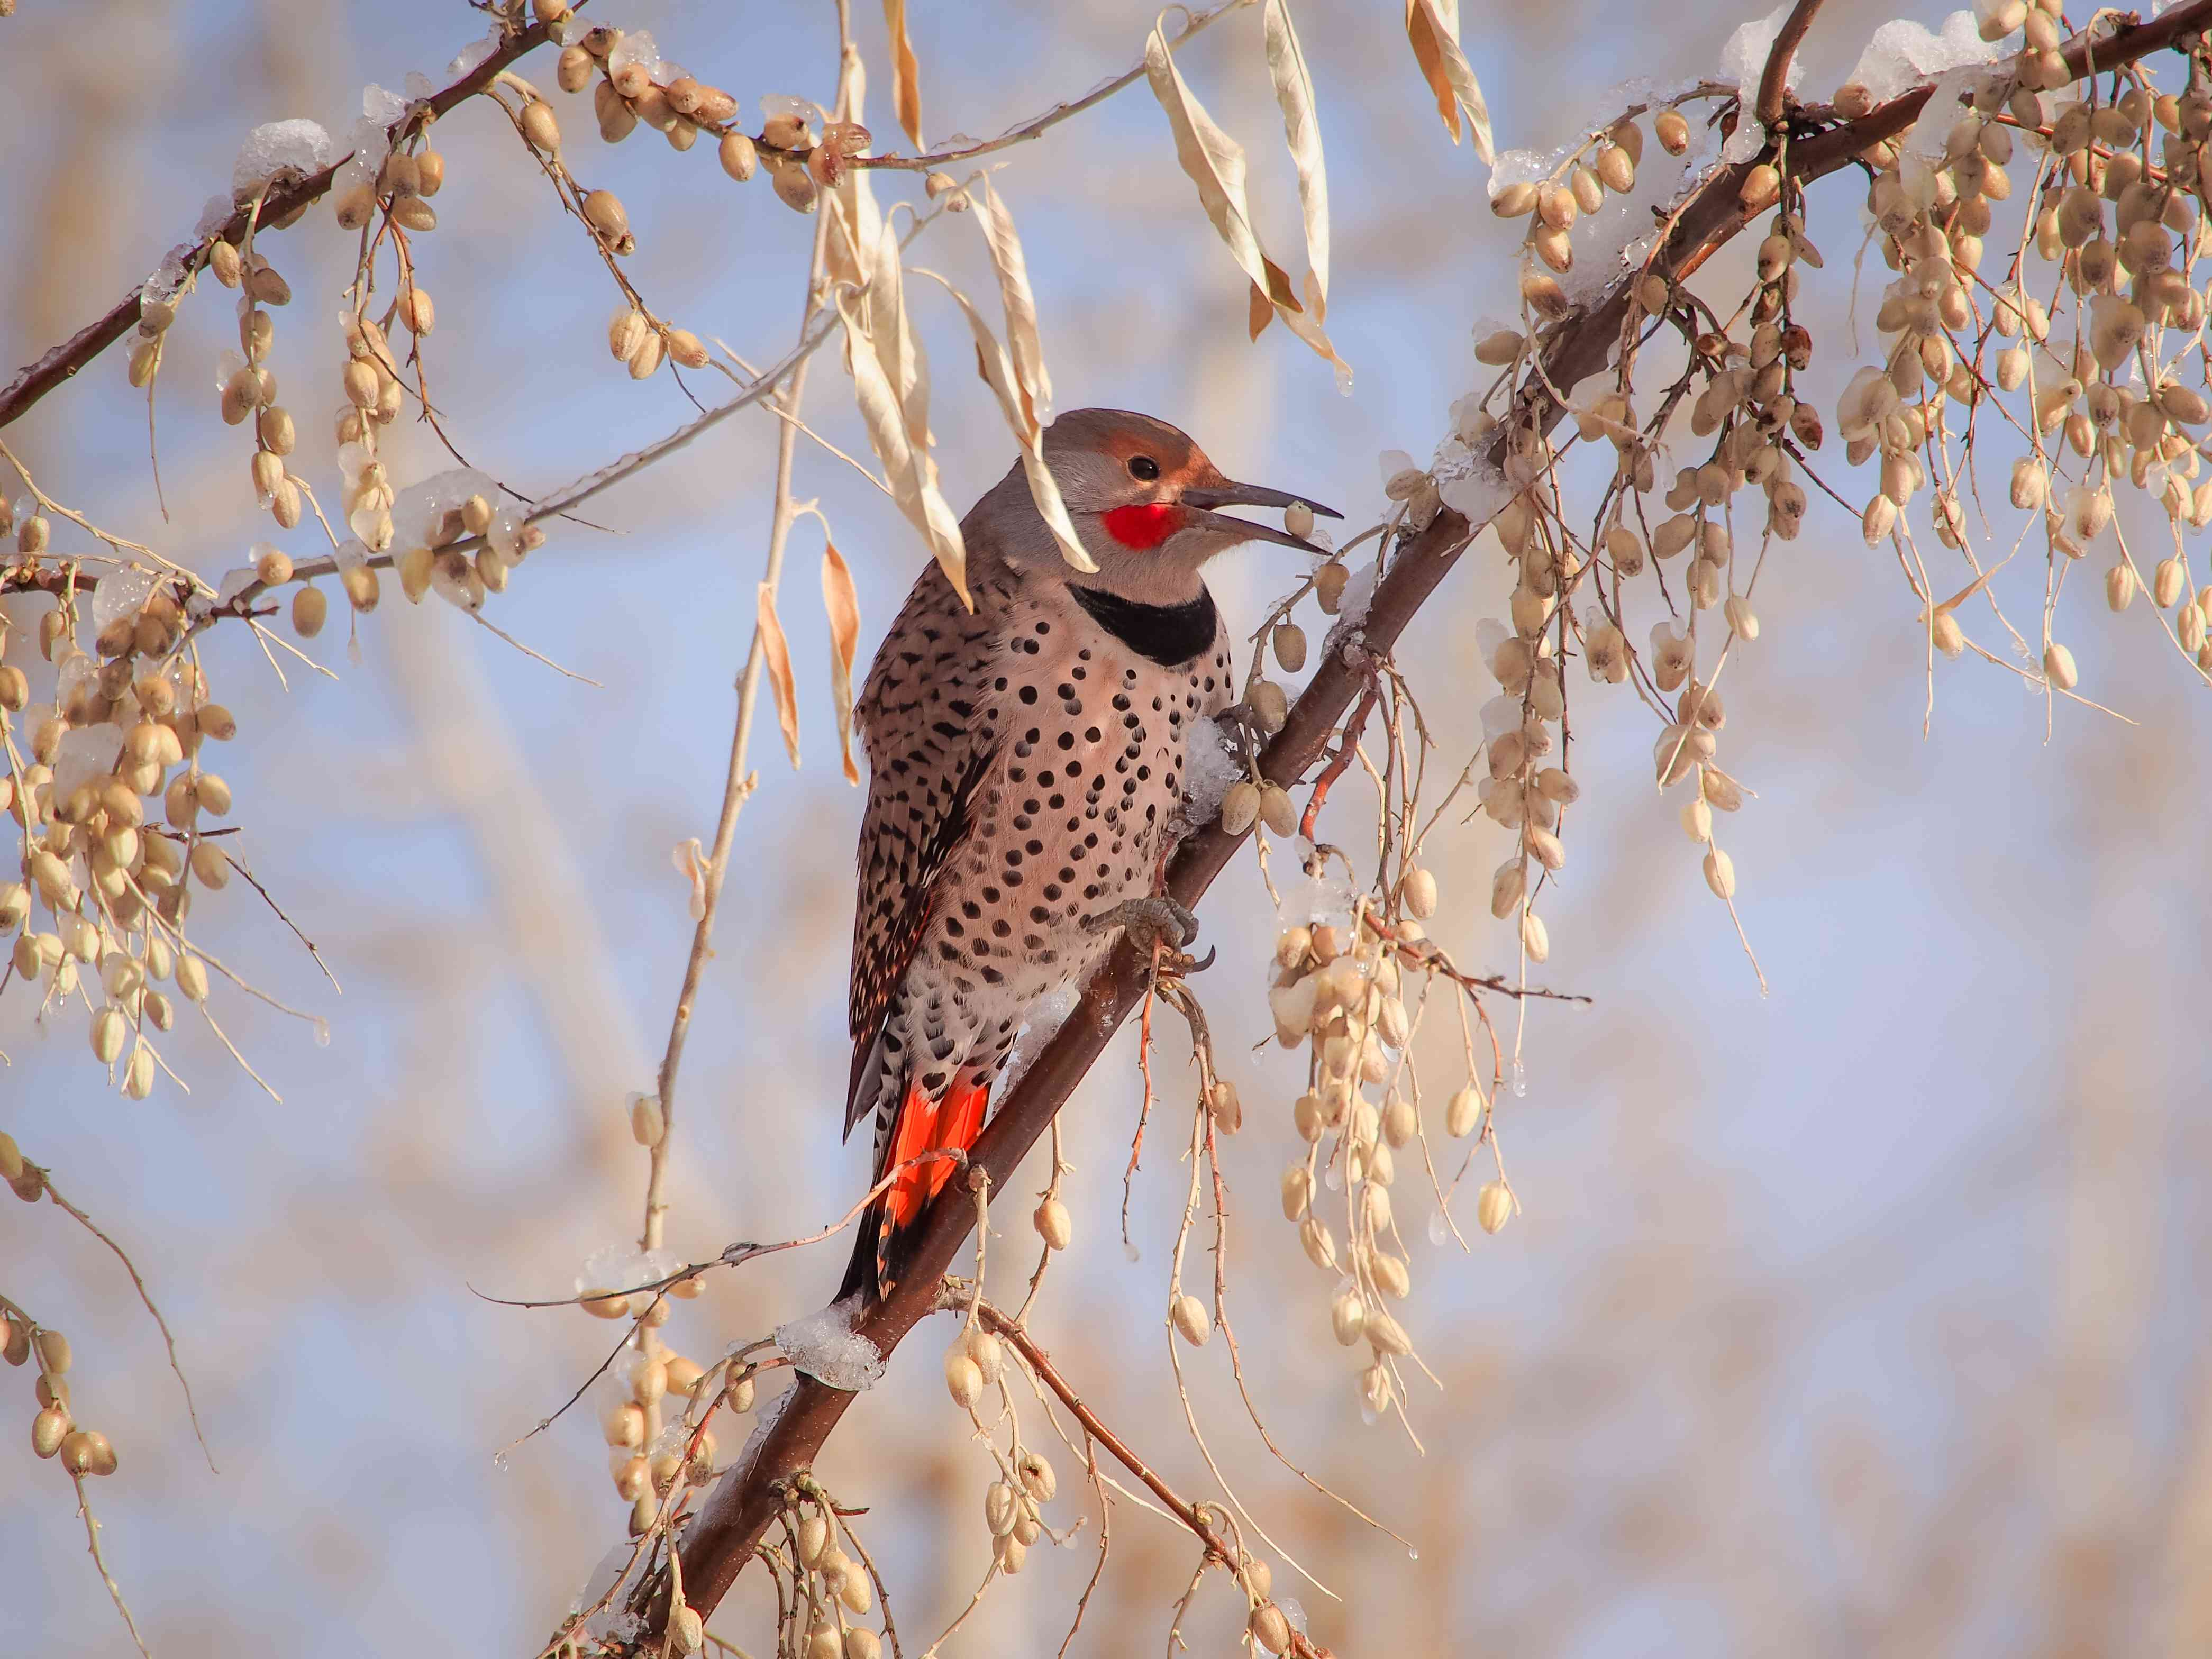 A northern flicker perched on a branch.